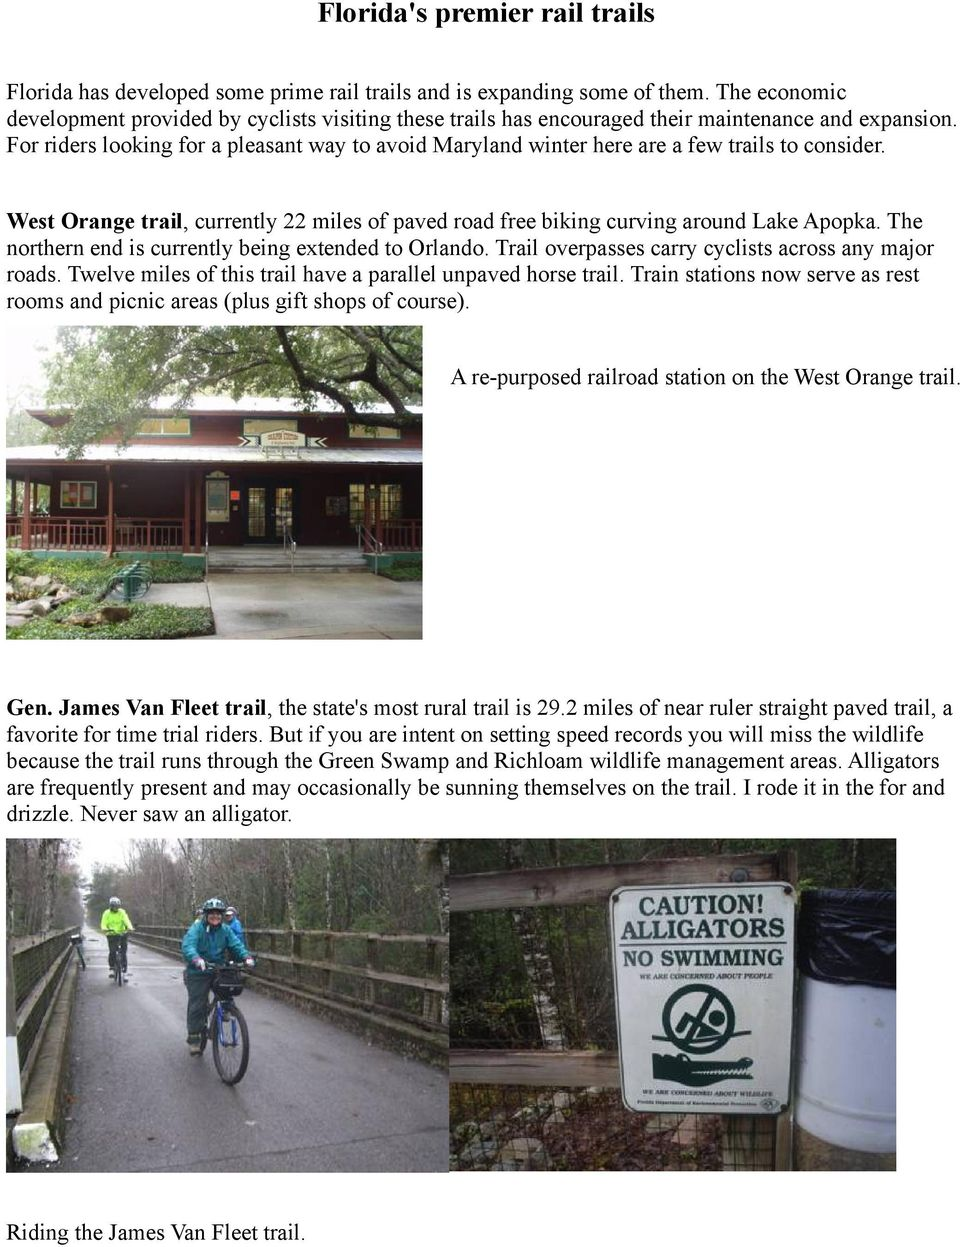 For riders looking for a pleasant way to avoid Maryland winter here are a few trails to consider. West Orange trail, currently 22 miles of paved road free biking curving around Lake Apopka.